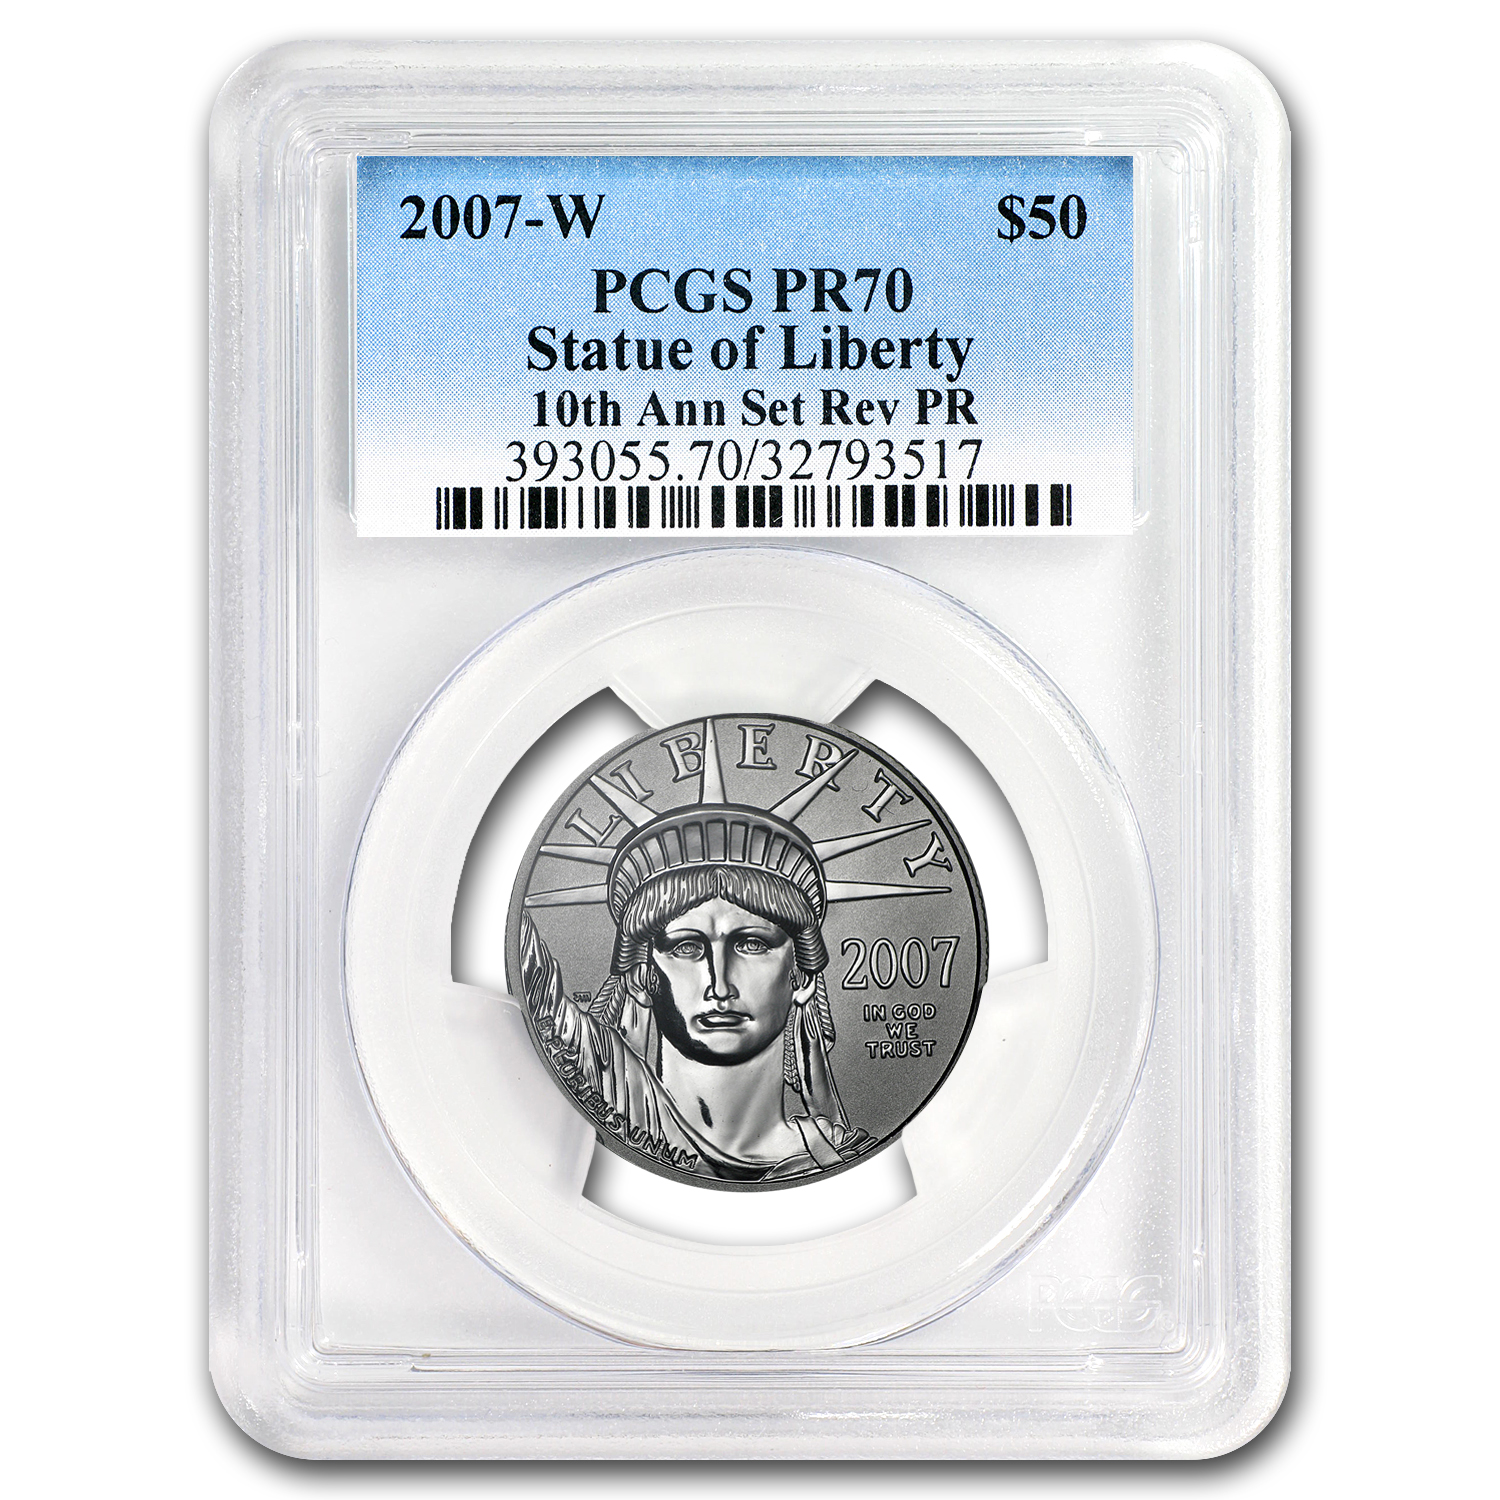 2007-W 1/2 oz Reverse Proof Platinum Eagle PR-70 PCGS